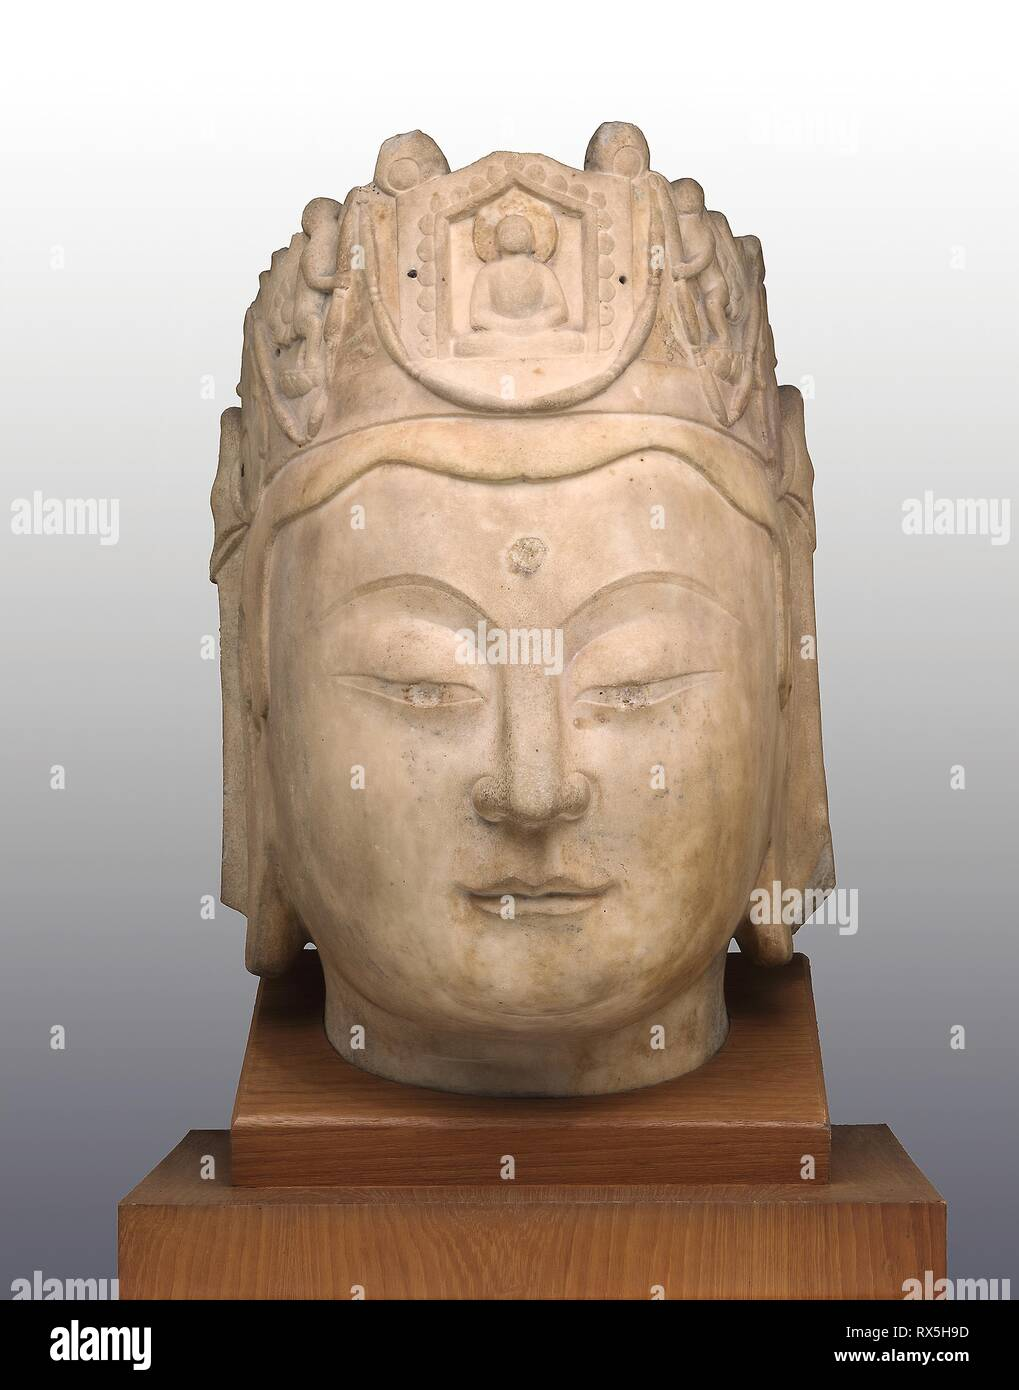 Head of Guanyin. China. Date: 575 AD-600 AD. Dimensions: 68.6 × 43.2 × 45.7 cm (27 1/16 × 17 1/16 × 18 in.). Marble with traces of metal fittings at crown. Origin: China. Museum: The Chicago Art Institute. Stock Photo